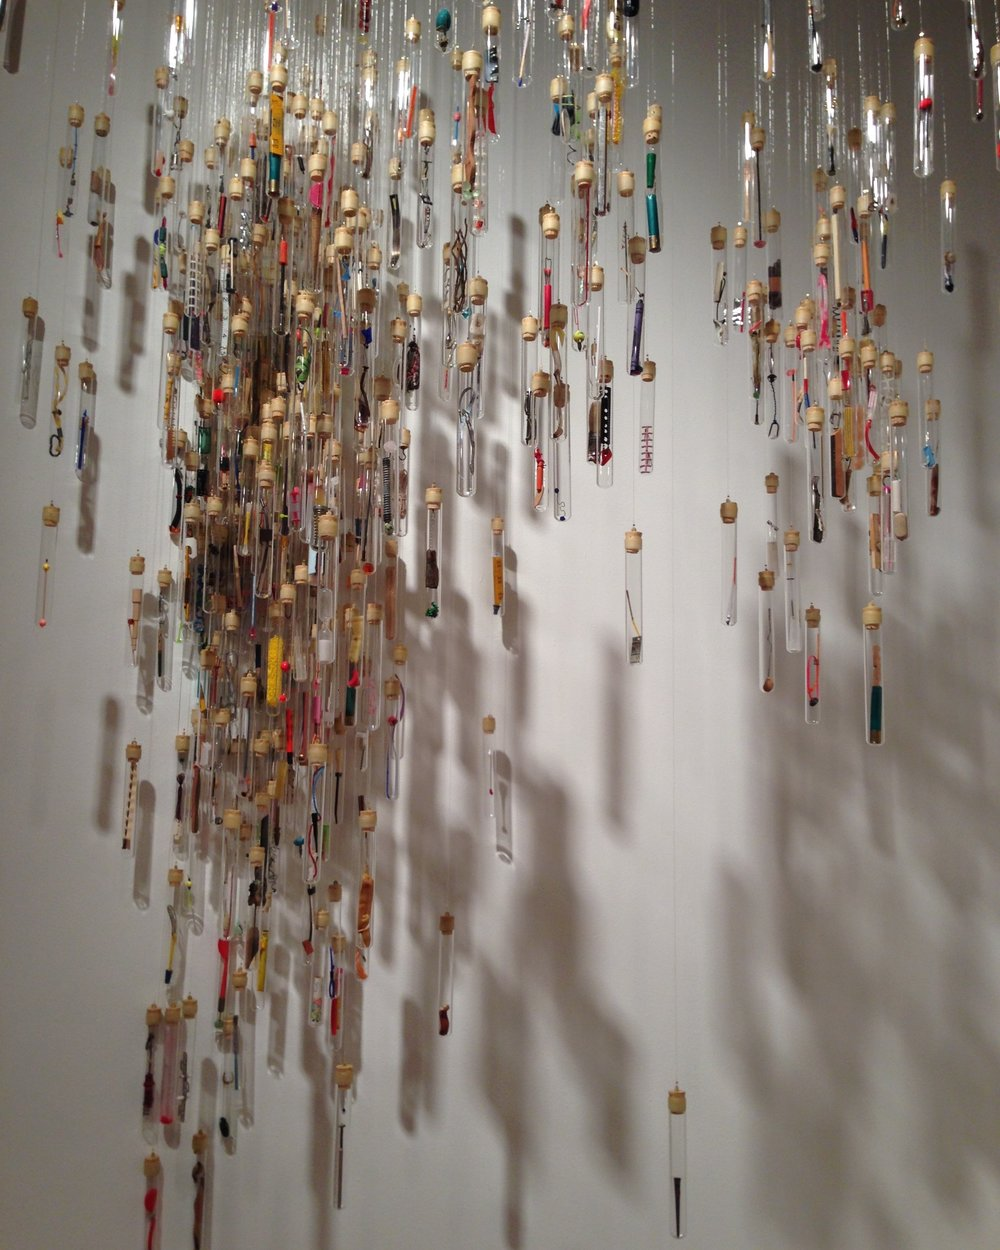 Sara Young (American, born 1960) and Tyler Budge (American, born 1972).  Swarm , 2005. Mixed media, glass test tubes, monofilament, audio, dymno label tape; Variable dimensions. Collection of the artists. Photo courtesy of the artists.